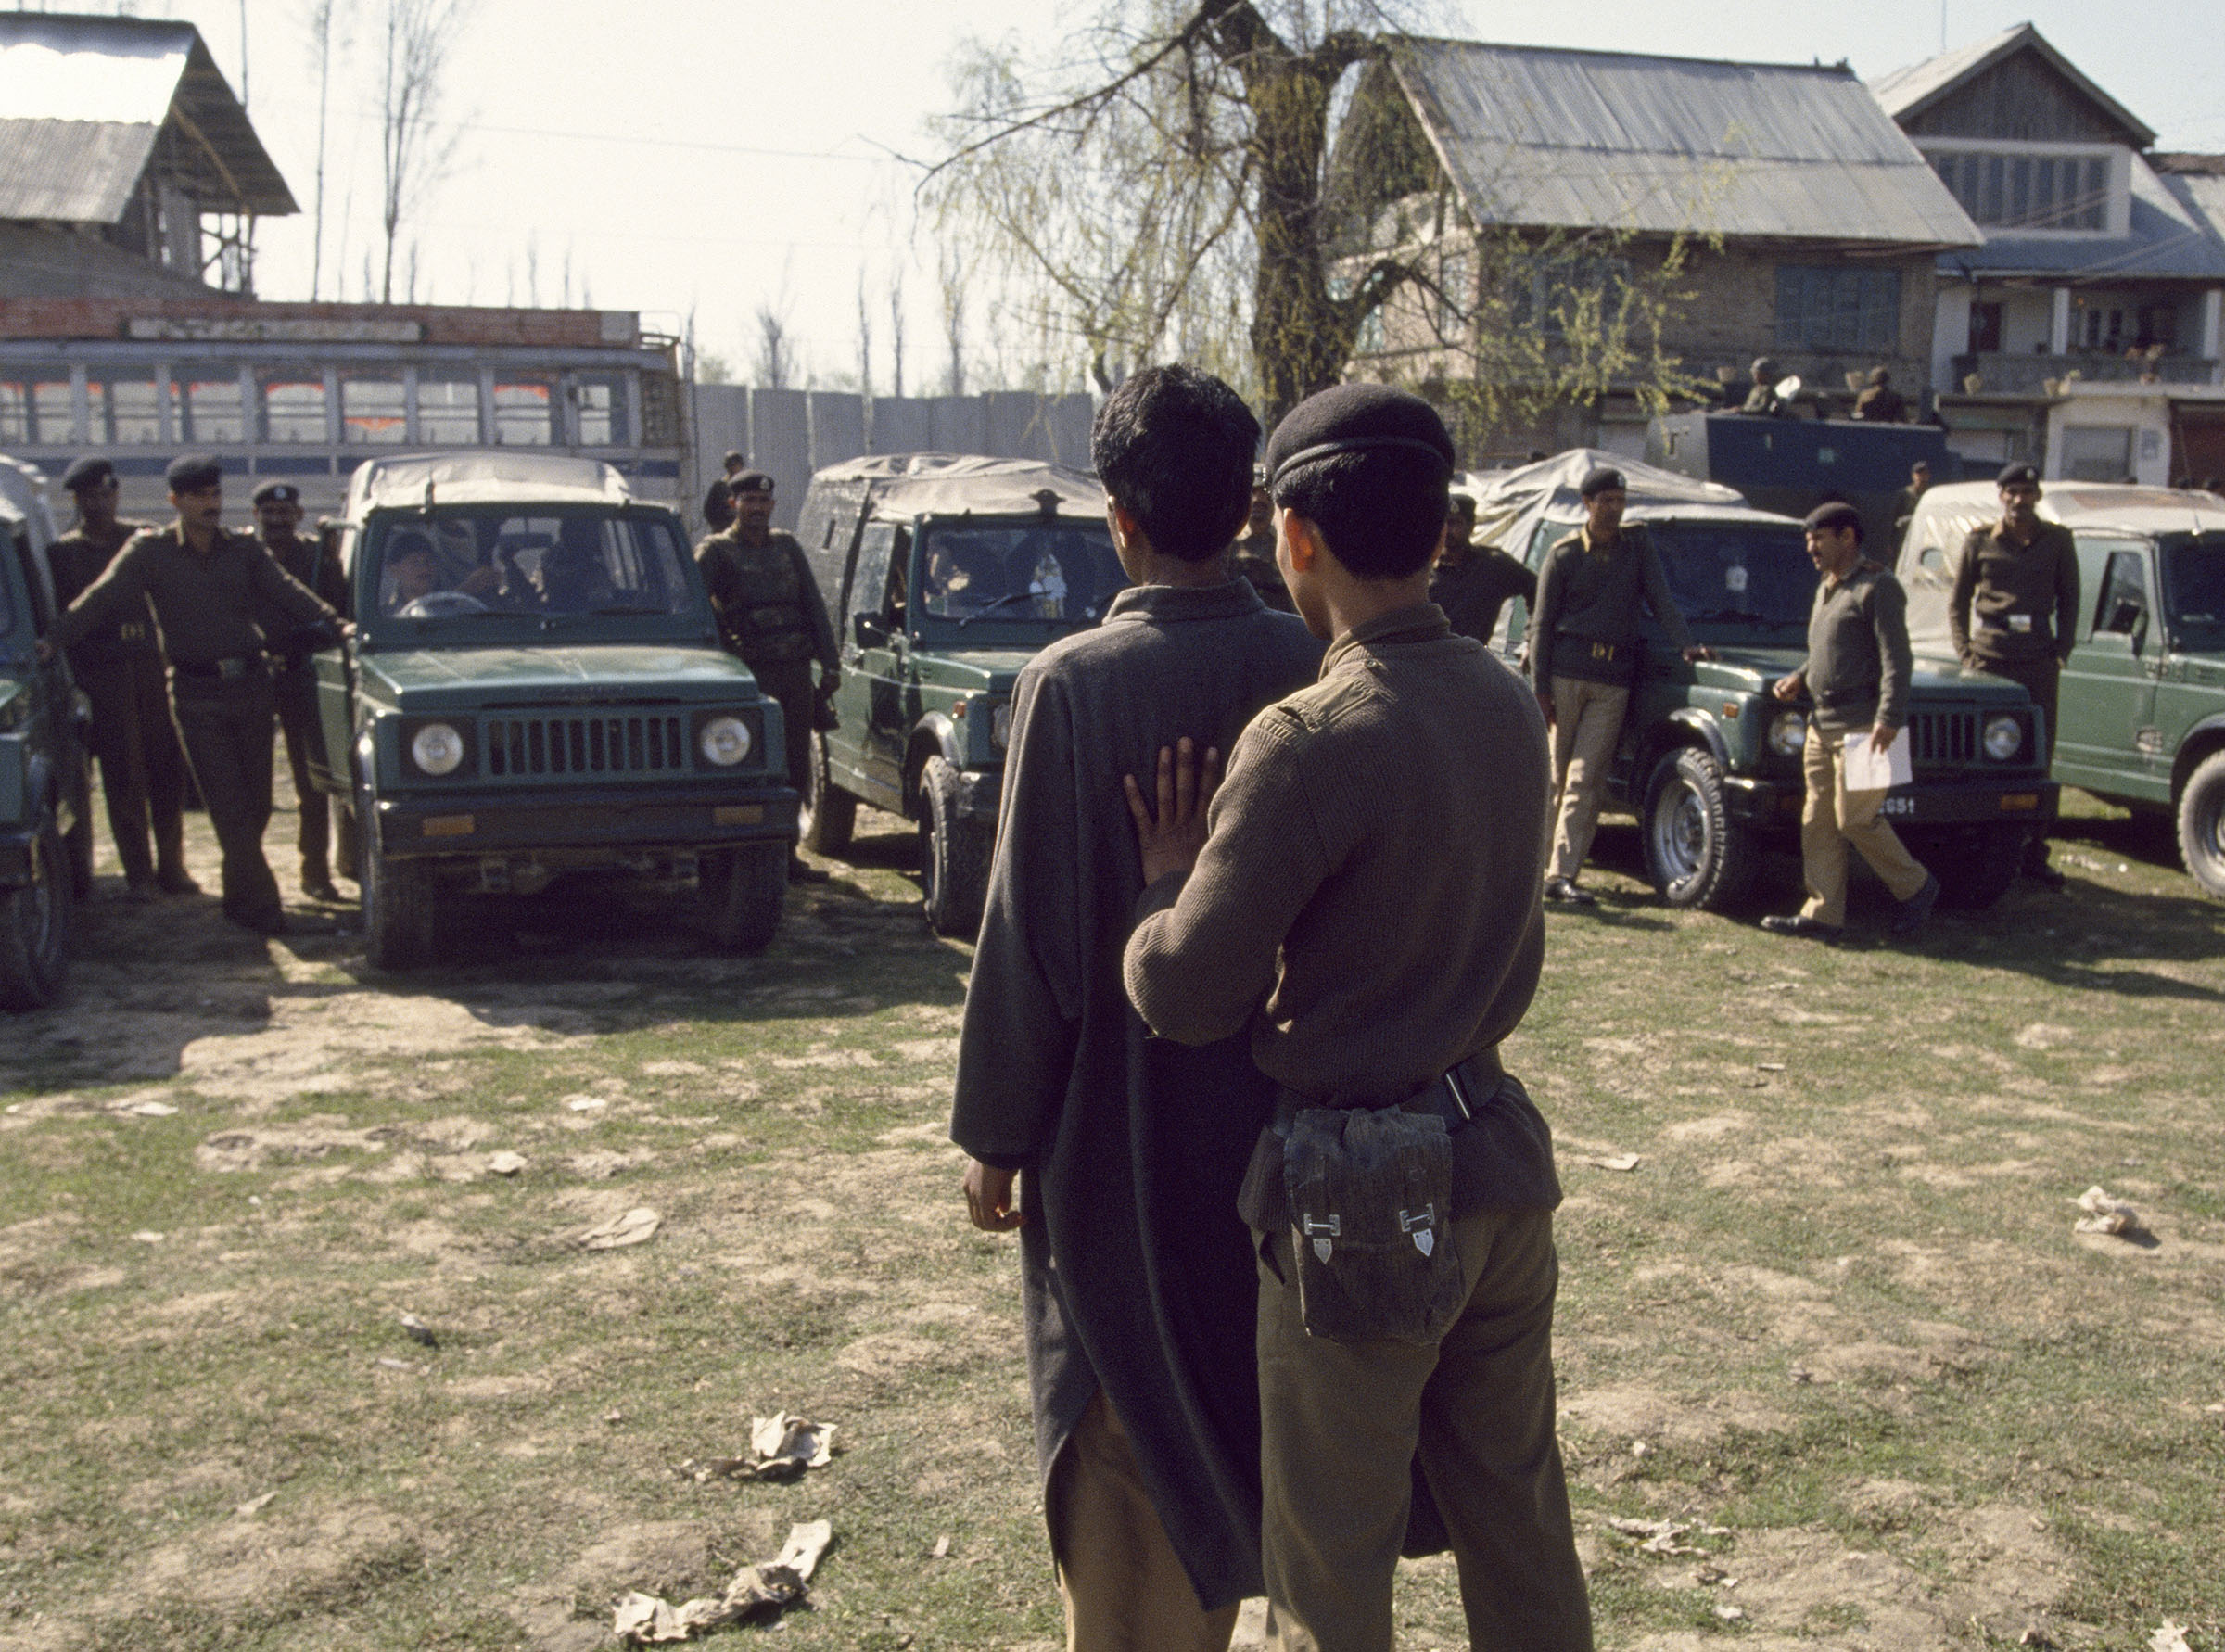 An Indian Border Security Force soldier shows a suspected militant to people in a line of parked military vehicles, Srinagar, India, on July 28, 1994.